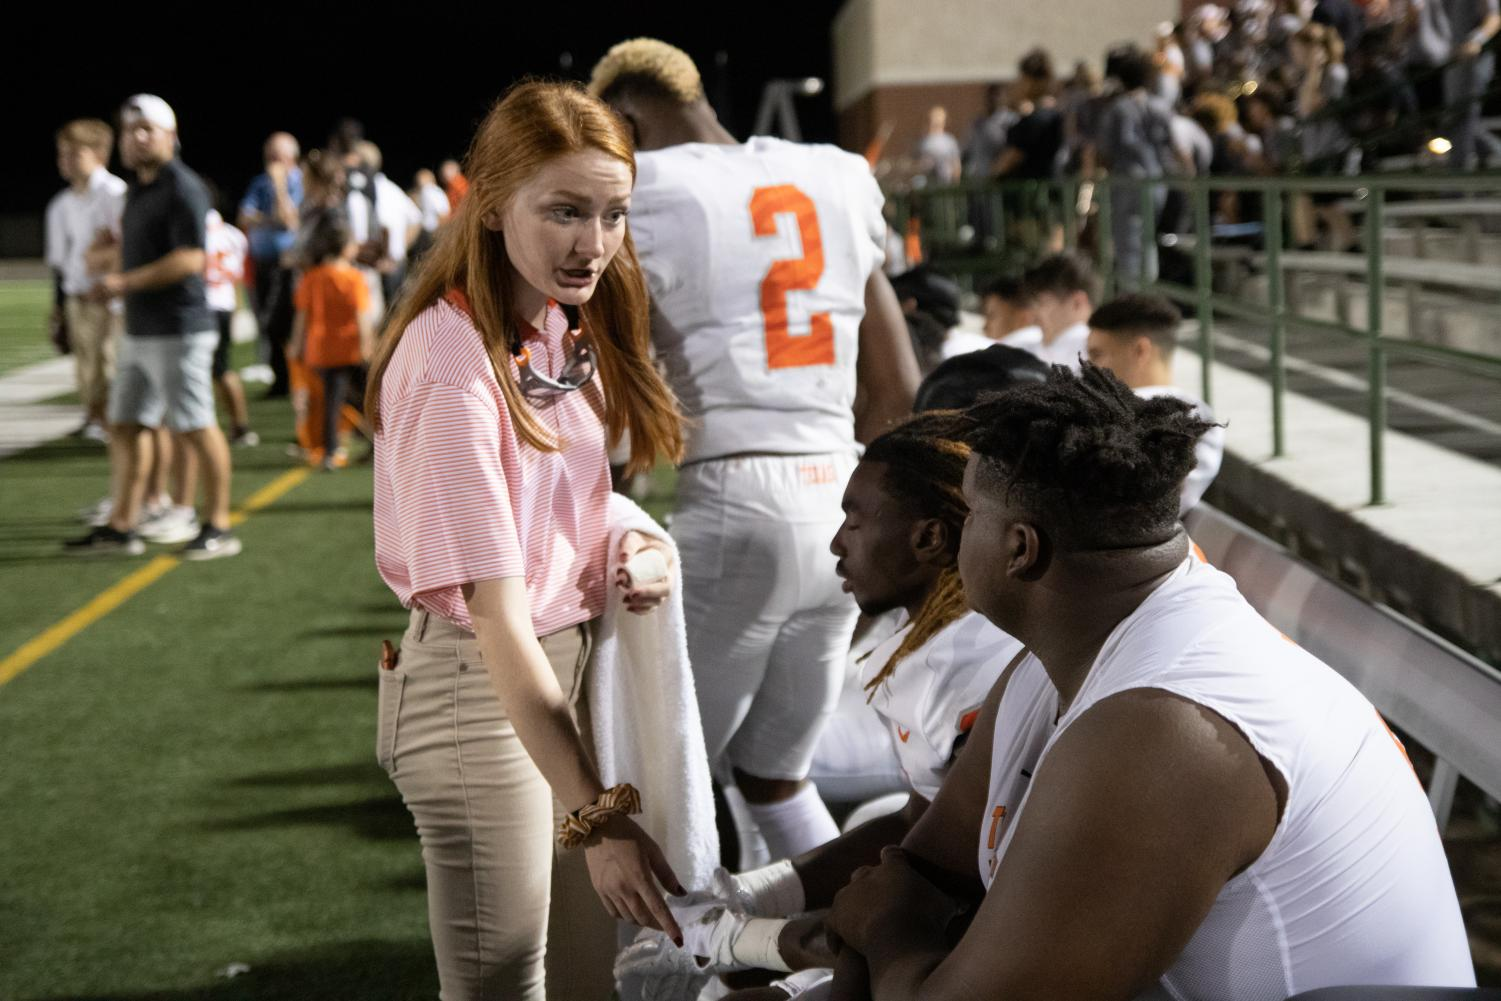 Devun Saveall checks up on a previously injured player at a football game. The student trainers work very hard at sports events to maintain the safety of players.